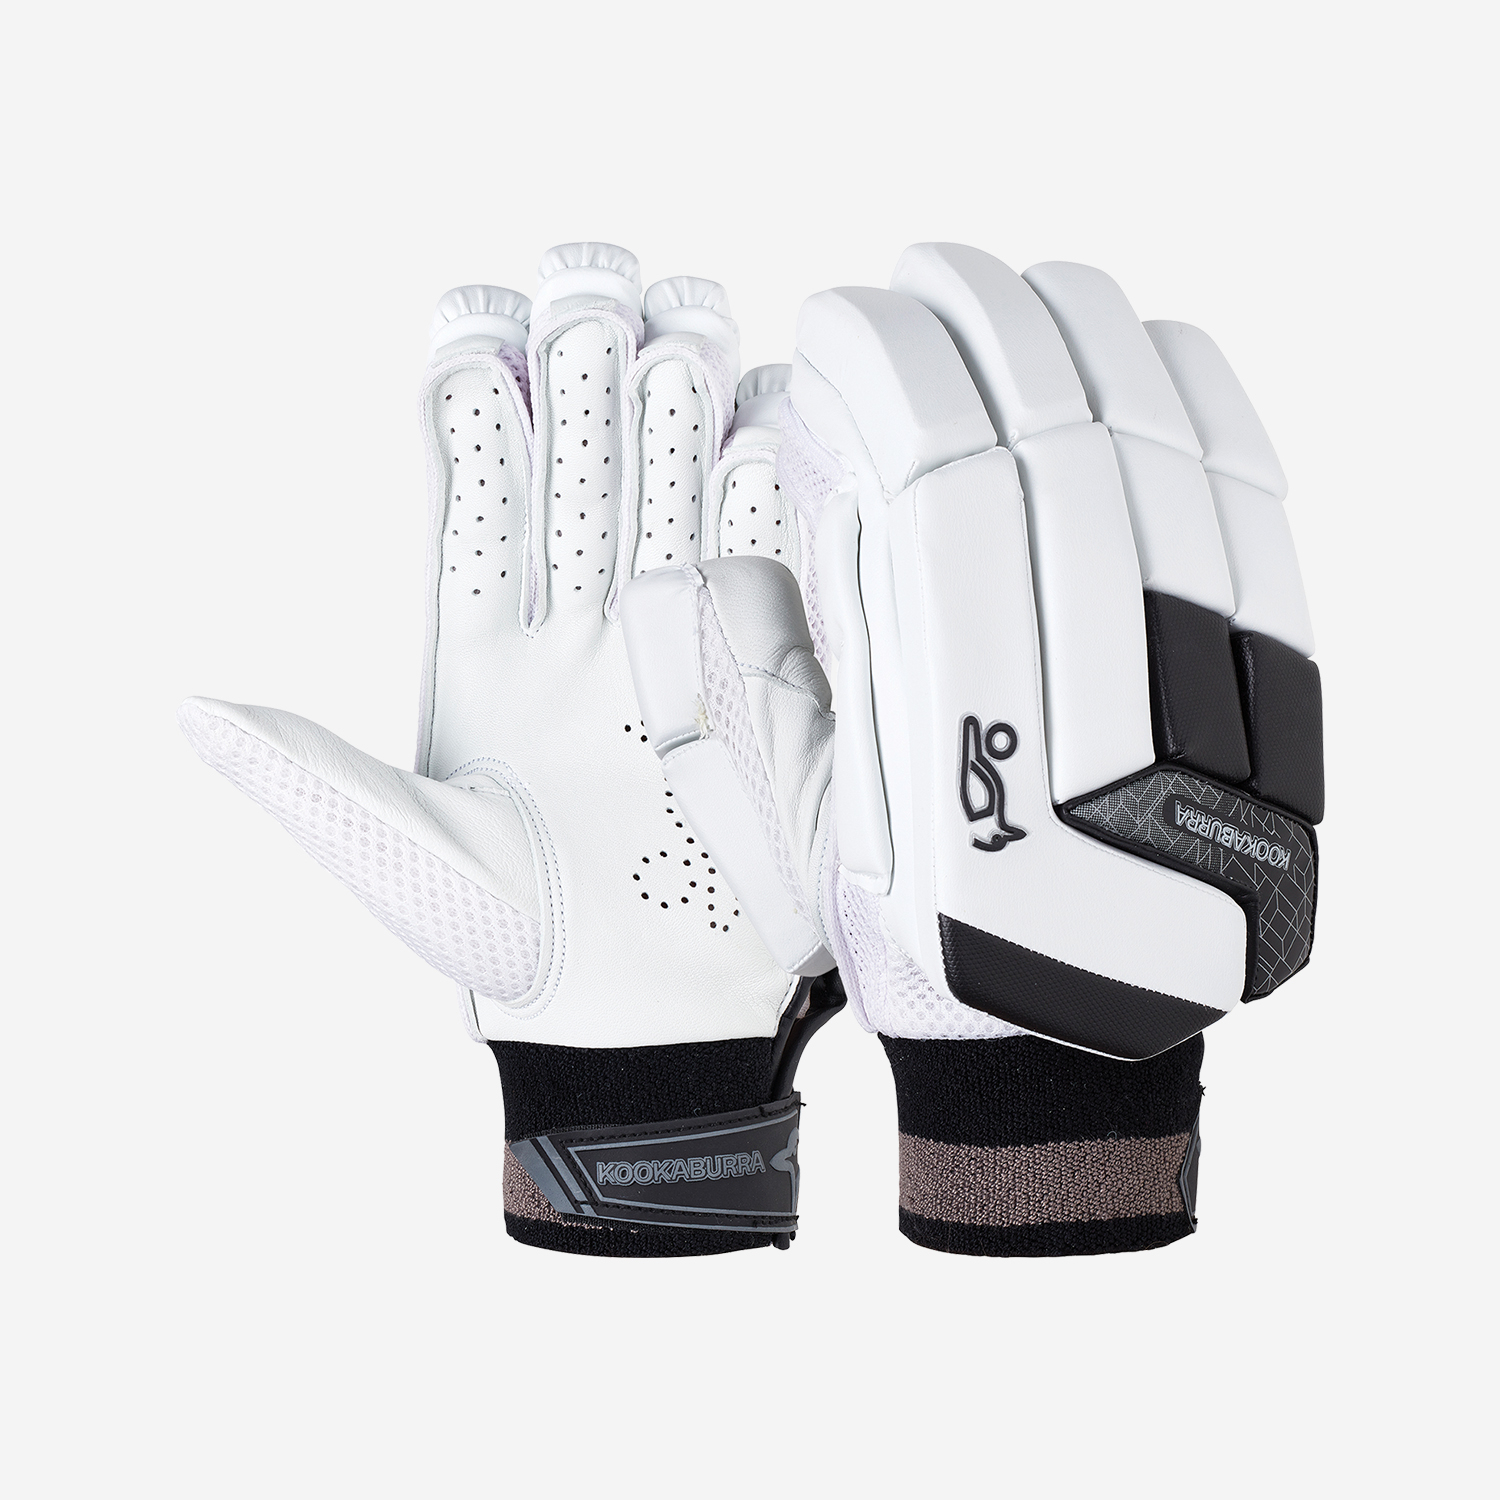 Shadow Pro 2.0 Batting Gloves